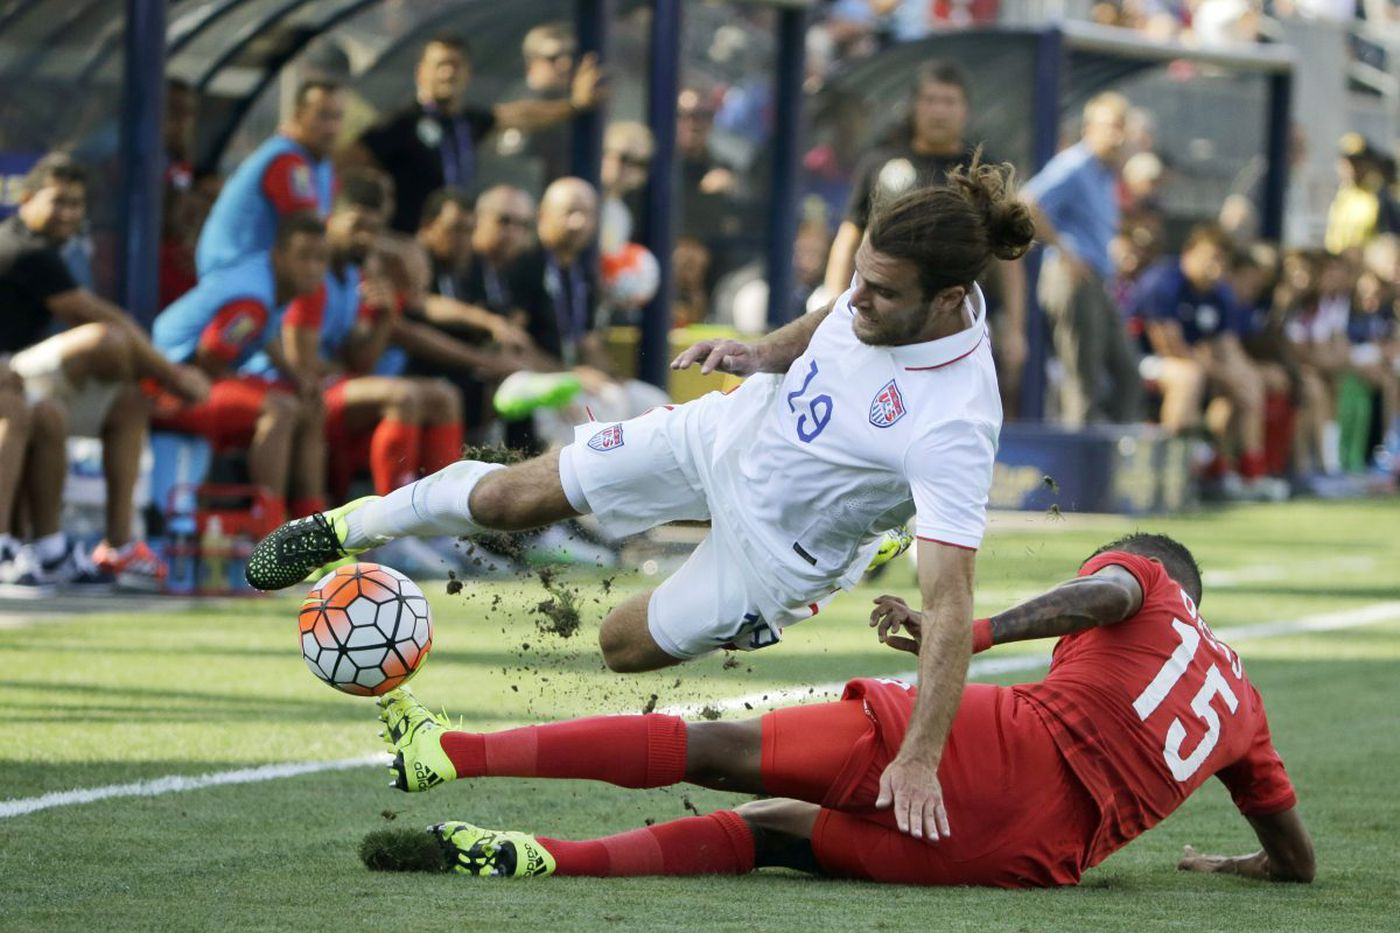 U.S. men's soccer team to play Bolivia at Talen Energy Stadium on Memorial Day